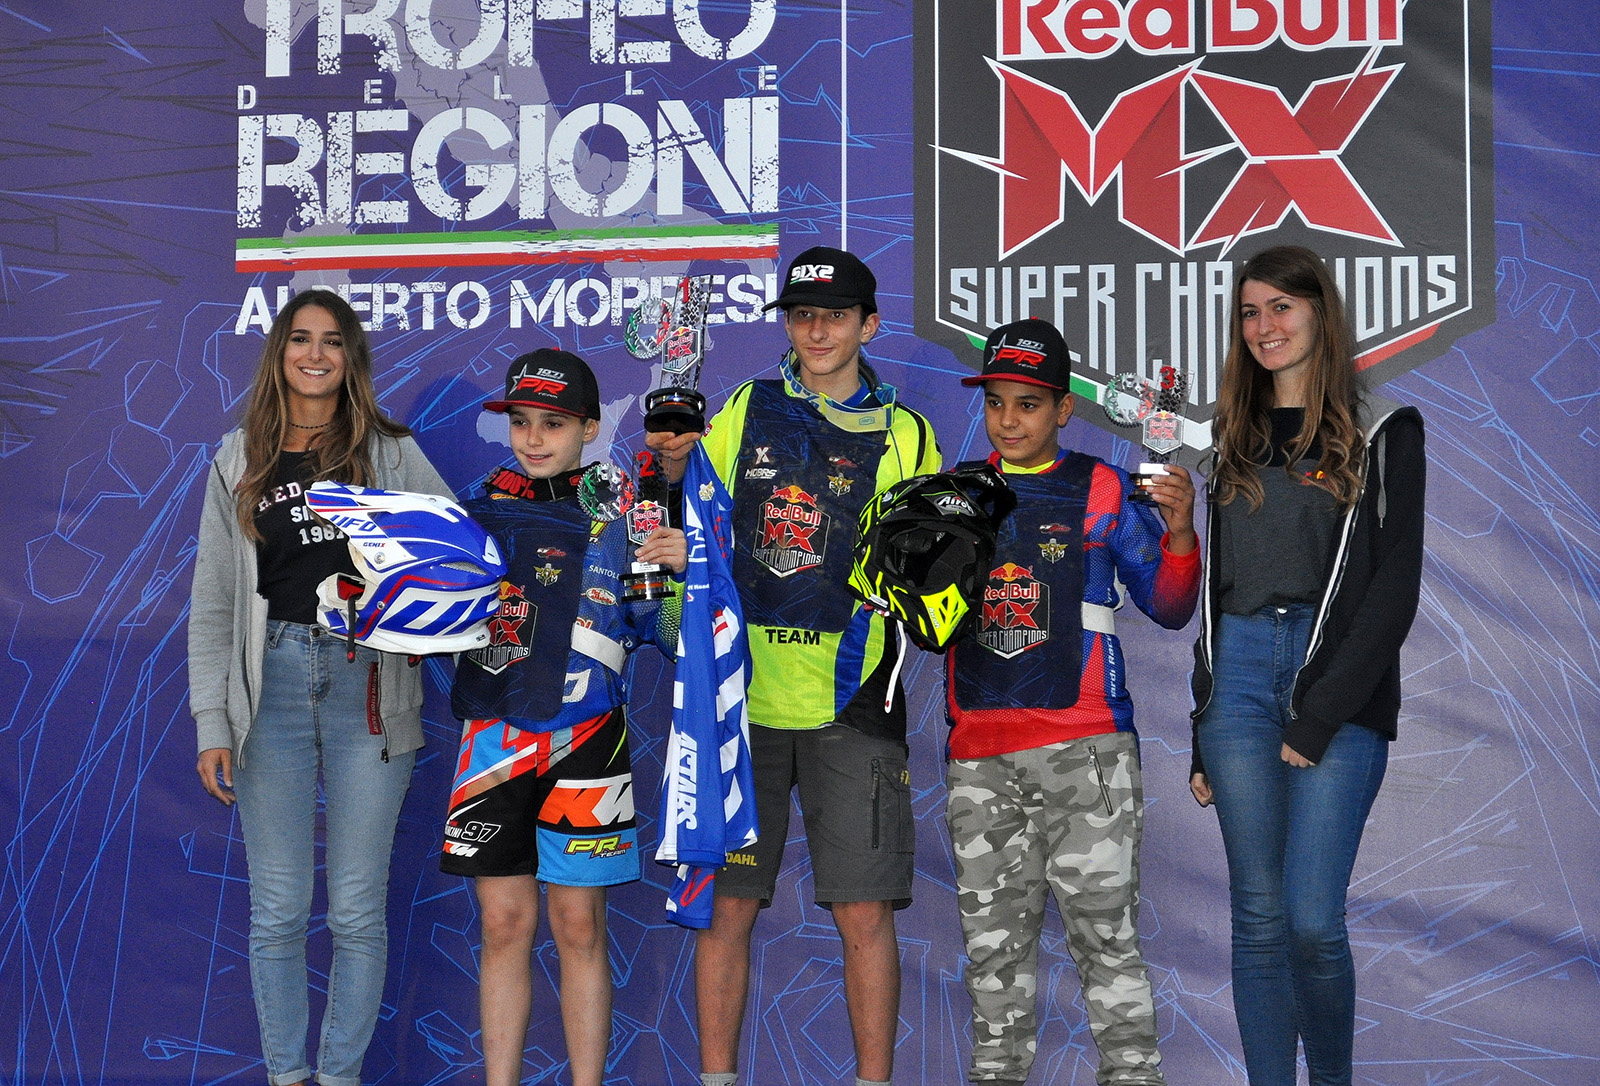 Podio junior Red Bull Mini Superchampions castiglione 2018